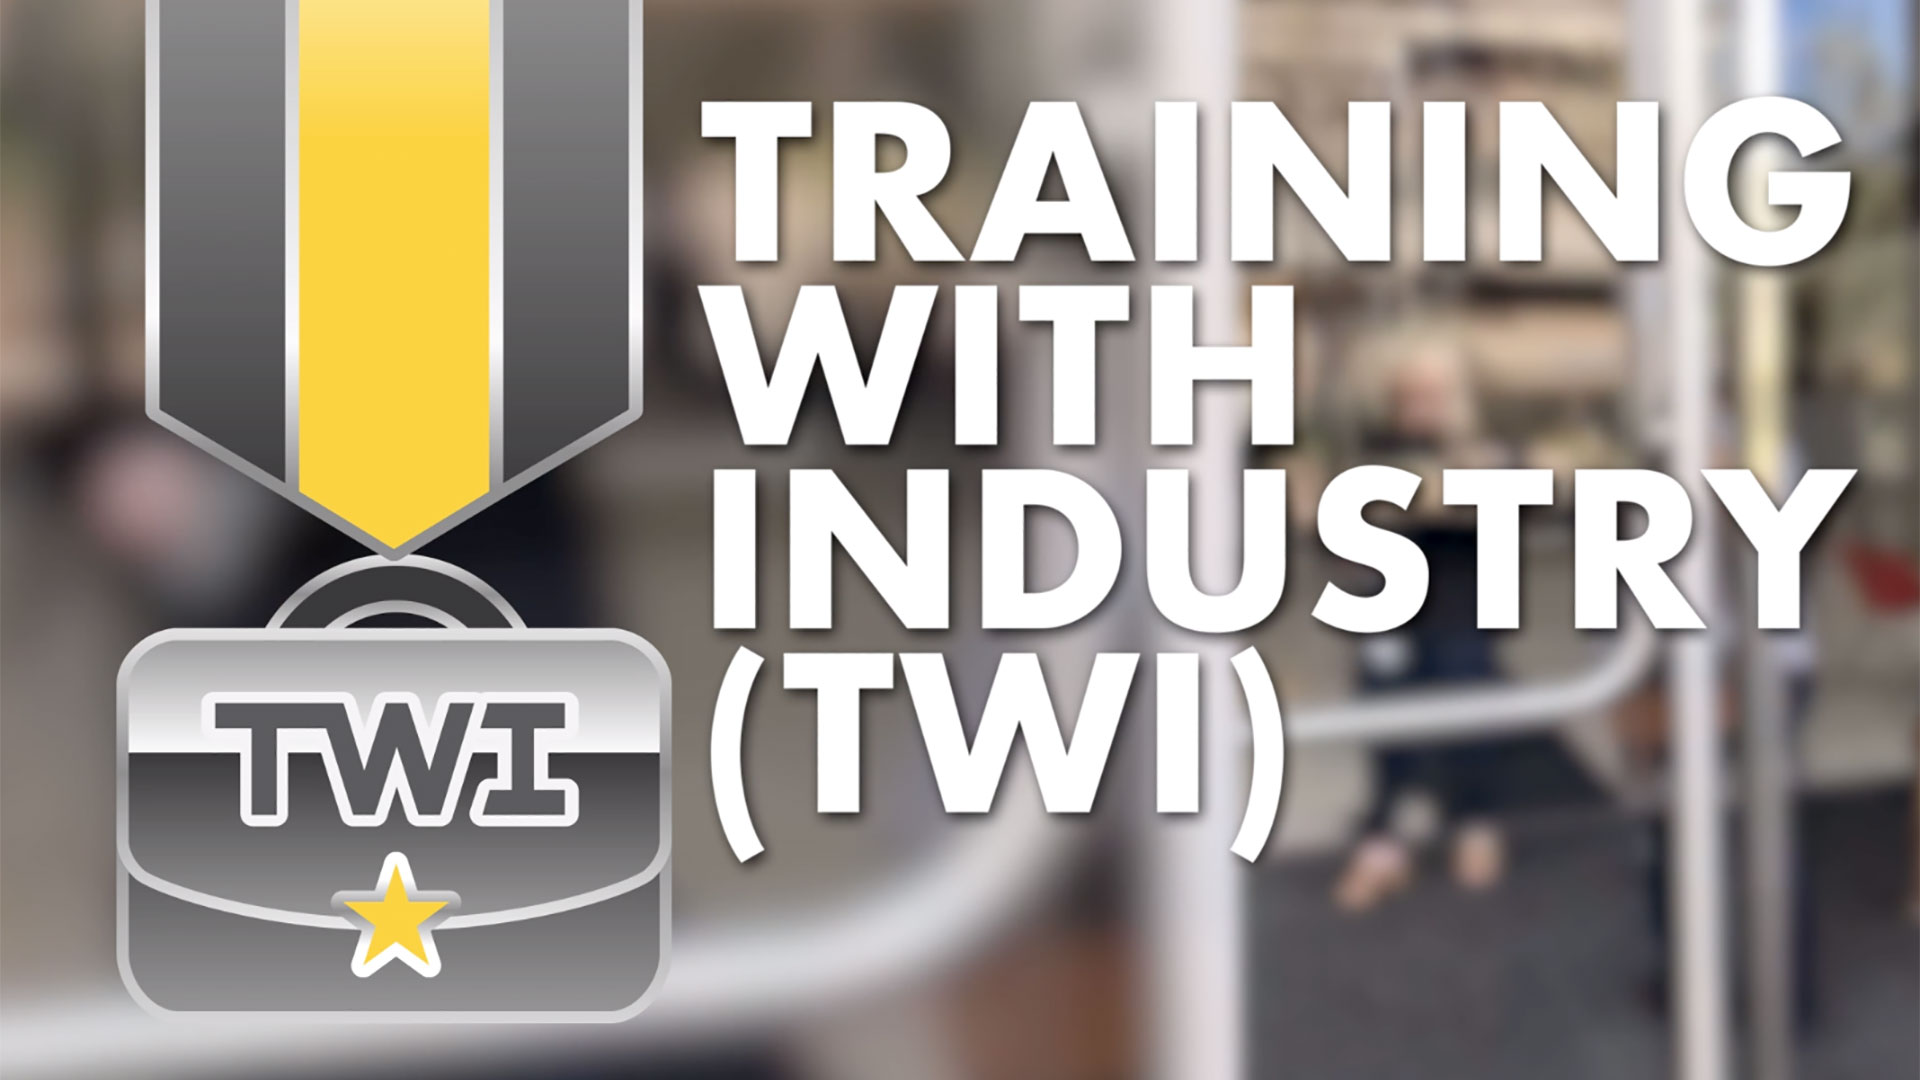 The multiple, mutual benefits of Training With Industry